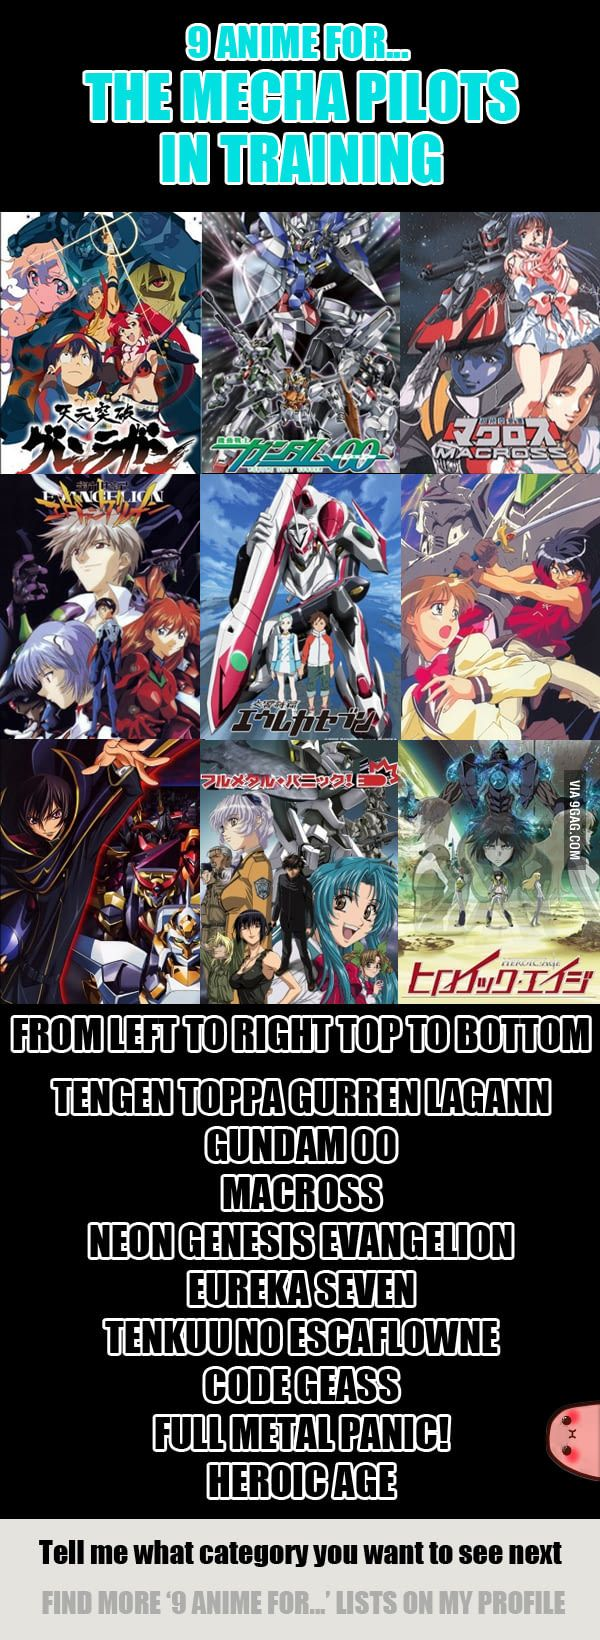 9 Anime For The Mecha Pilot In Training Anime shows